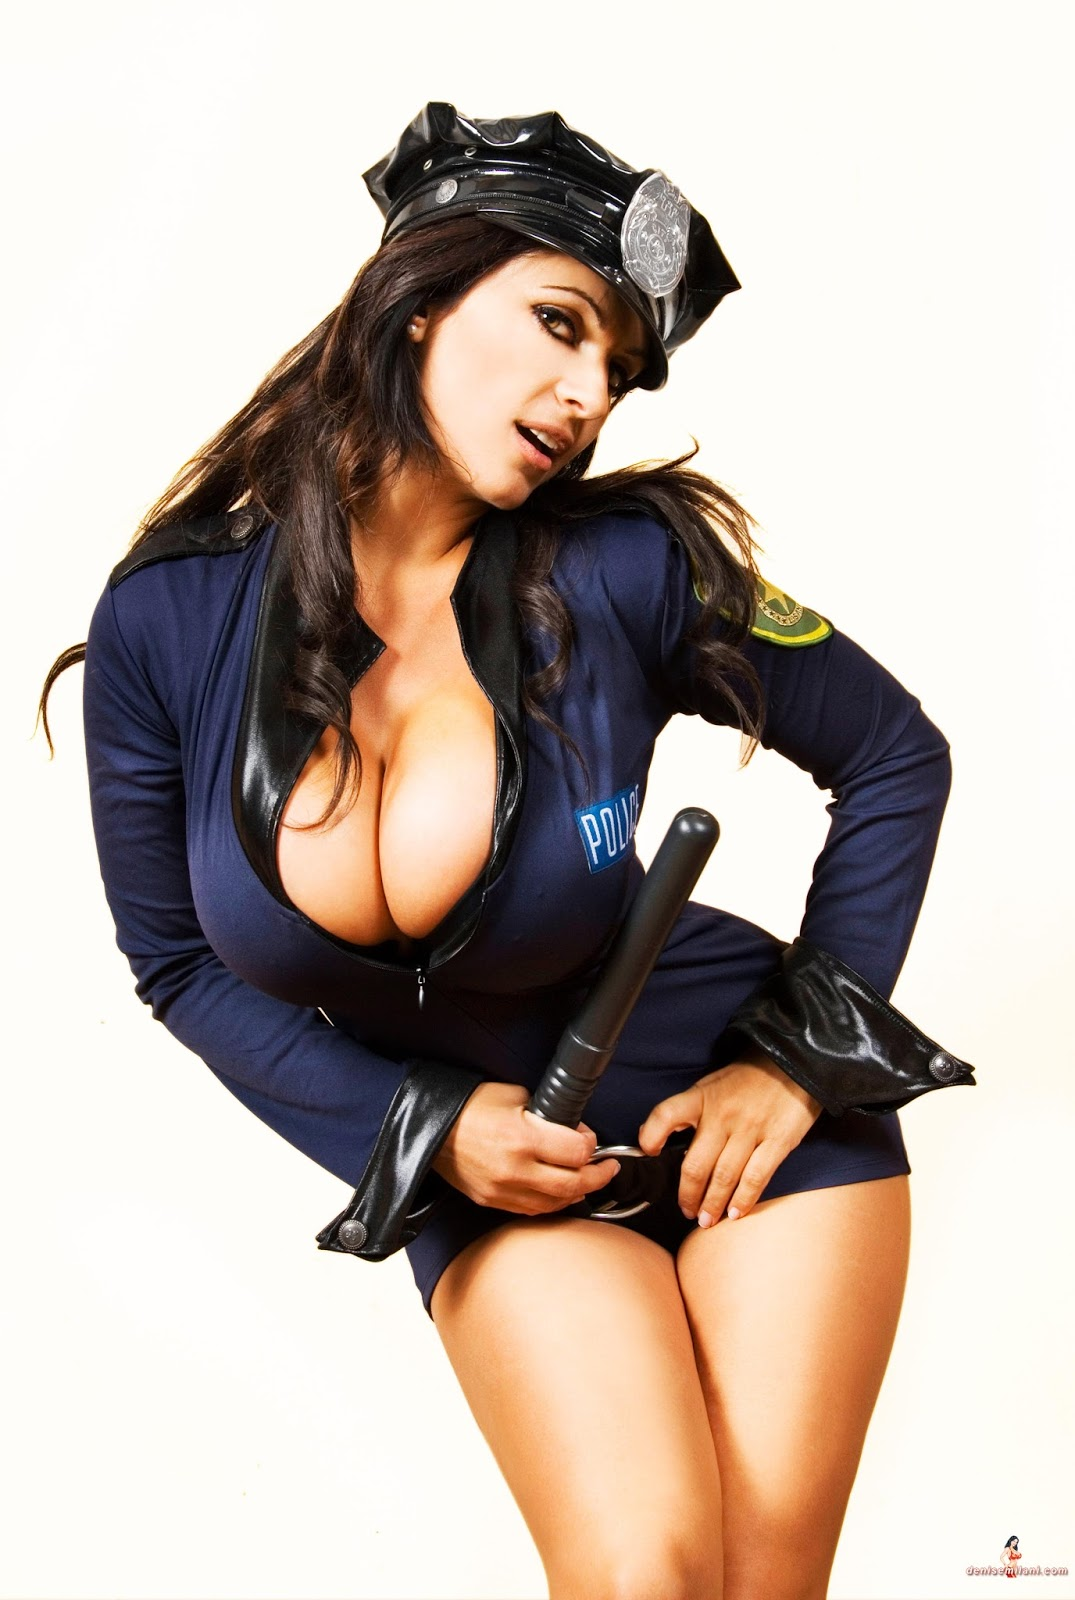 Halloween Sexy Police Women Costume Cosplay Cop Officer Dress Uniform Outfit S